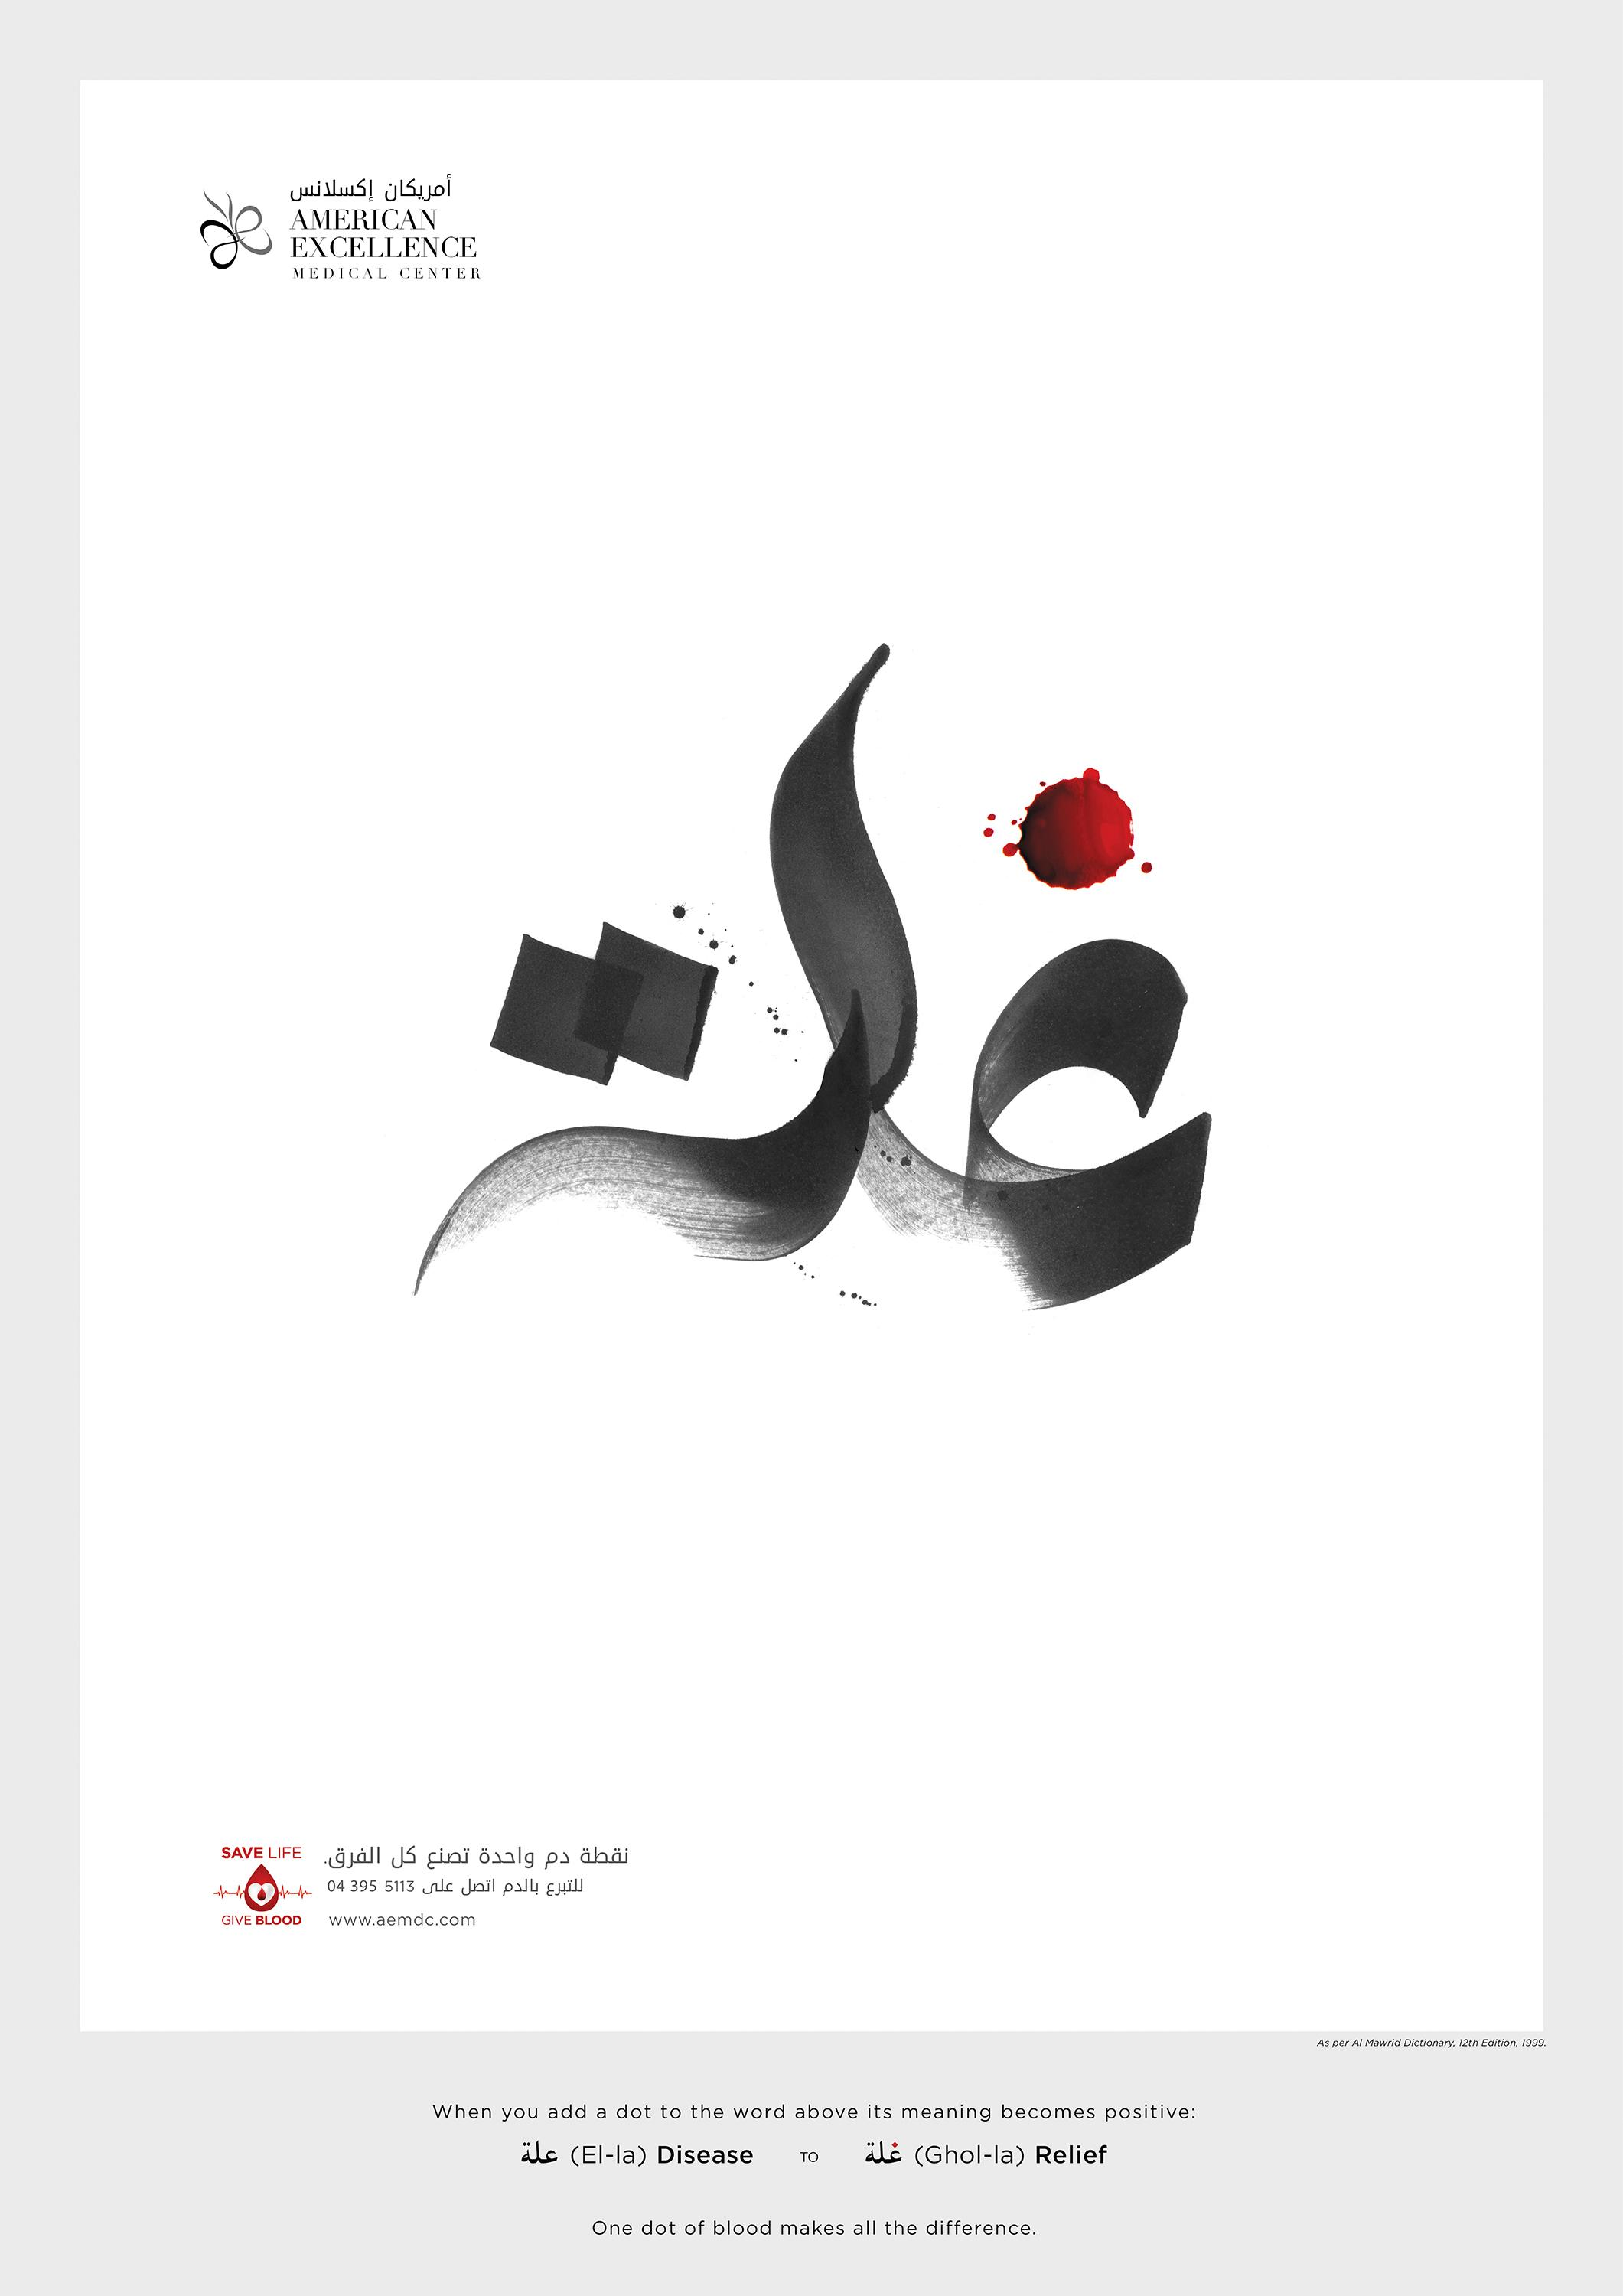 American Excellence Medical Centre Print Ad - Relief